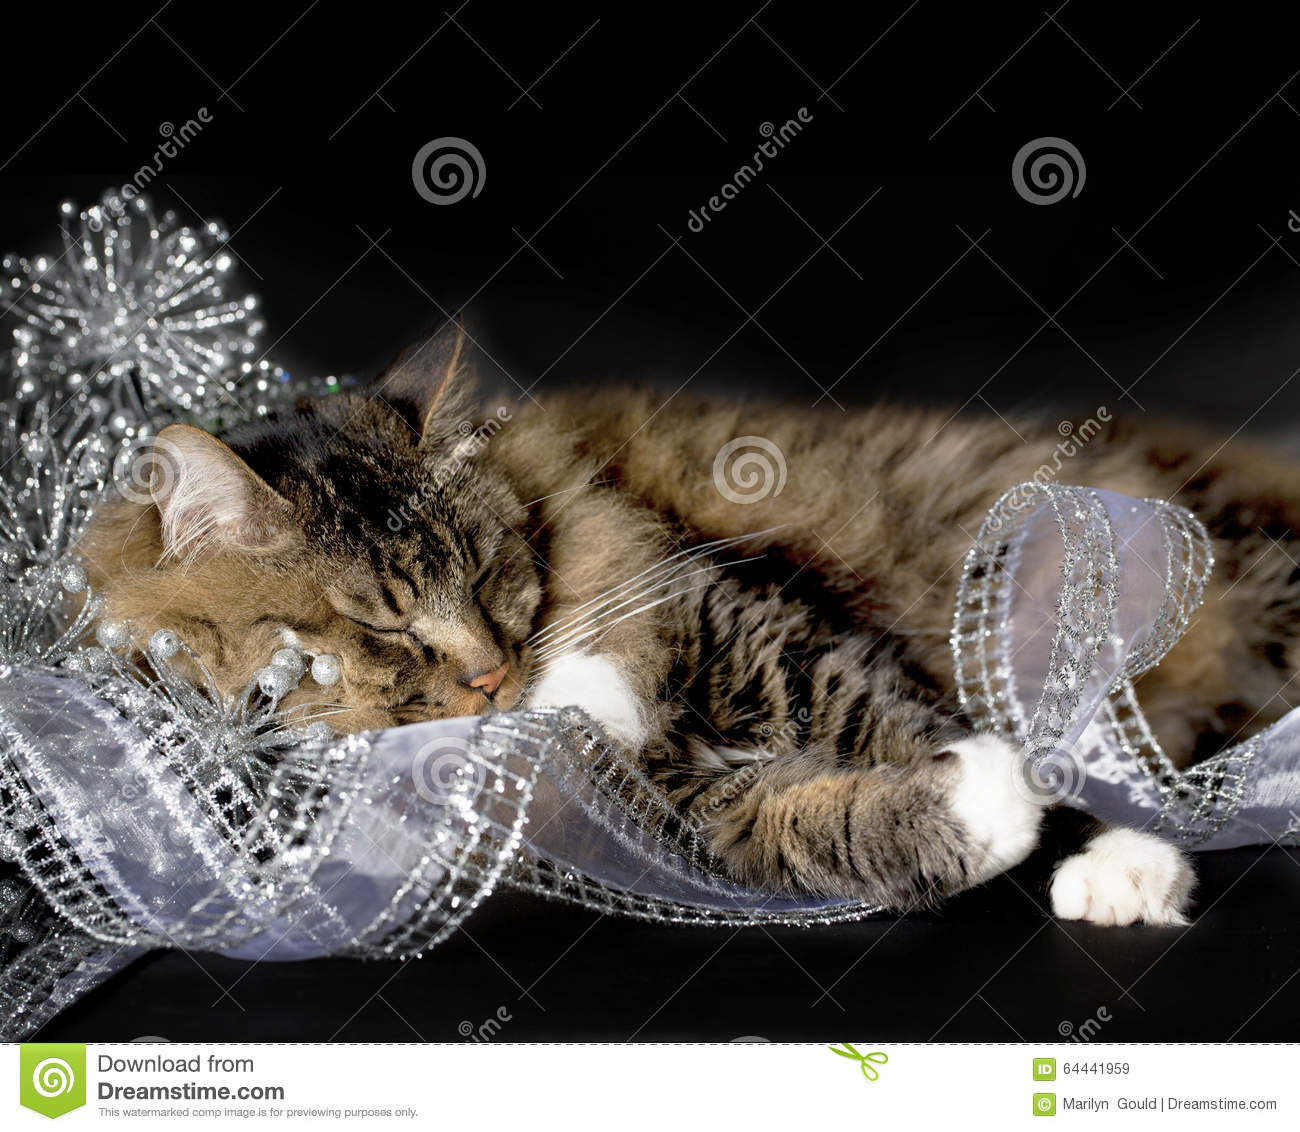 Cat Sleeping in Christmas Decorations